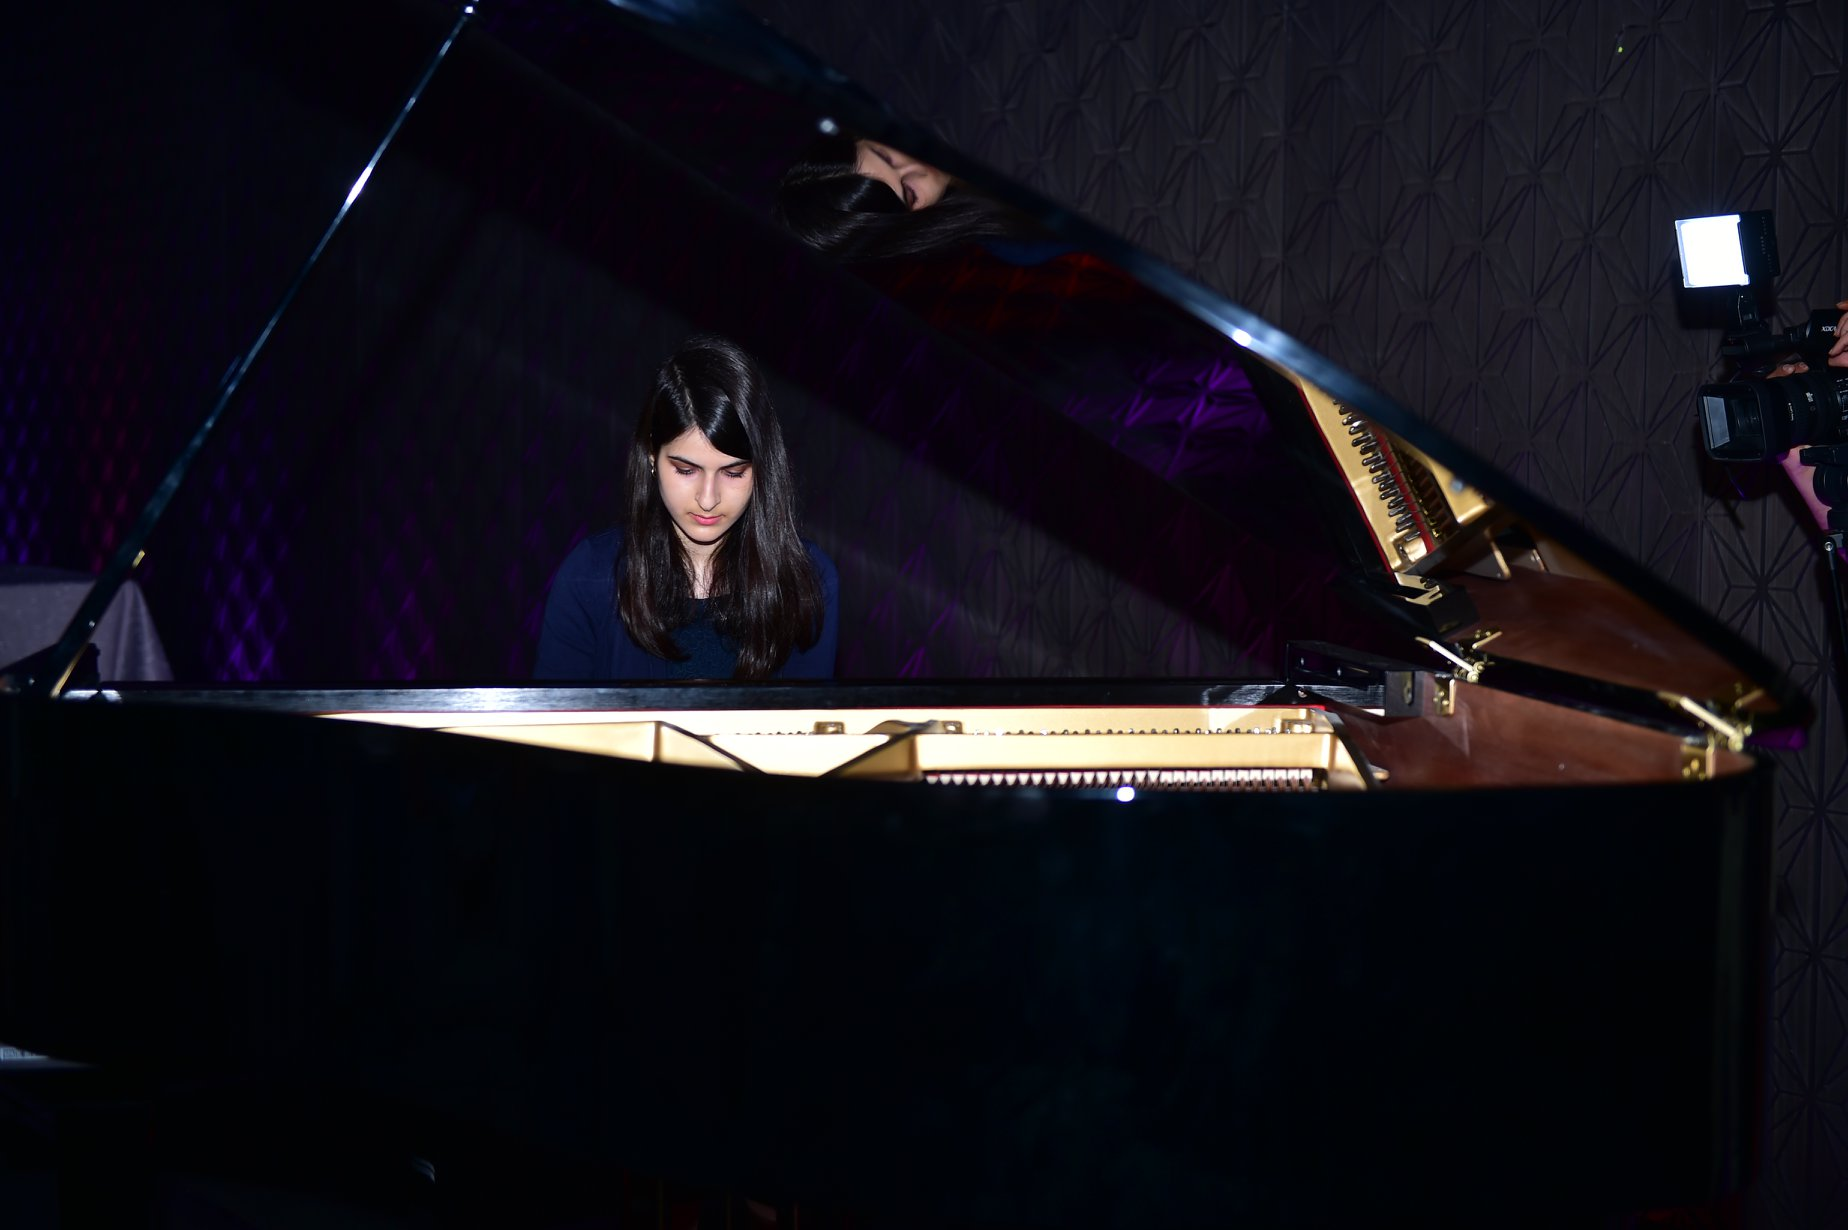 Lulwa Al Shamlan, Year 12 student and one of the youngest Inspiring Kuwaitis in our book, playing the Appassionata sonata, 3rd movement by Beethoven on the piano at the launch of Those Who Inspire Kuwait ©Those Who Inspire